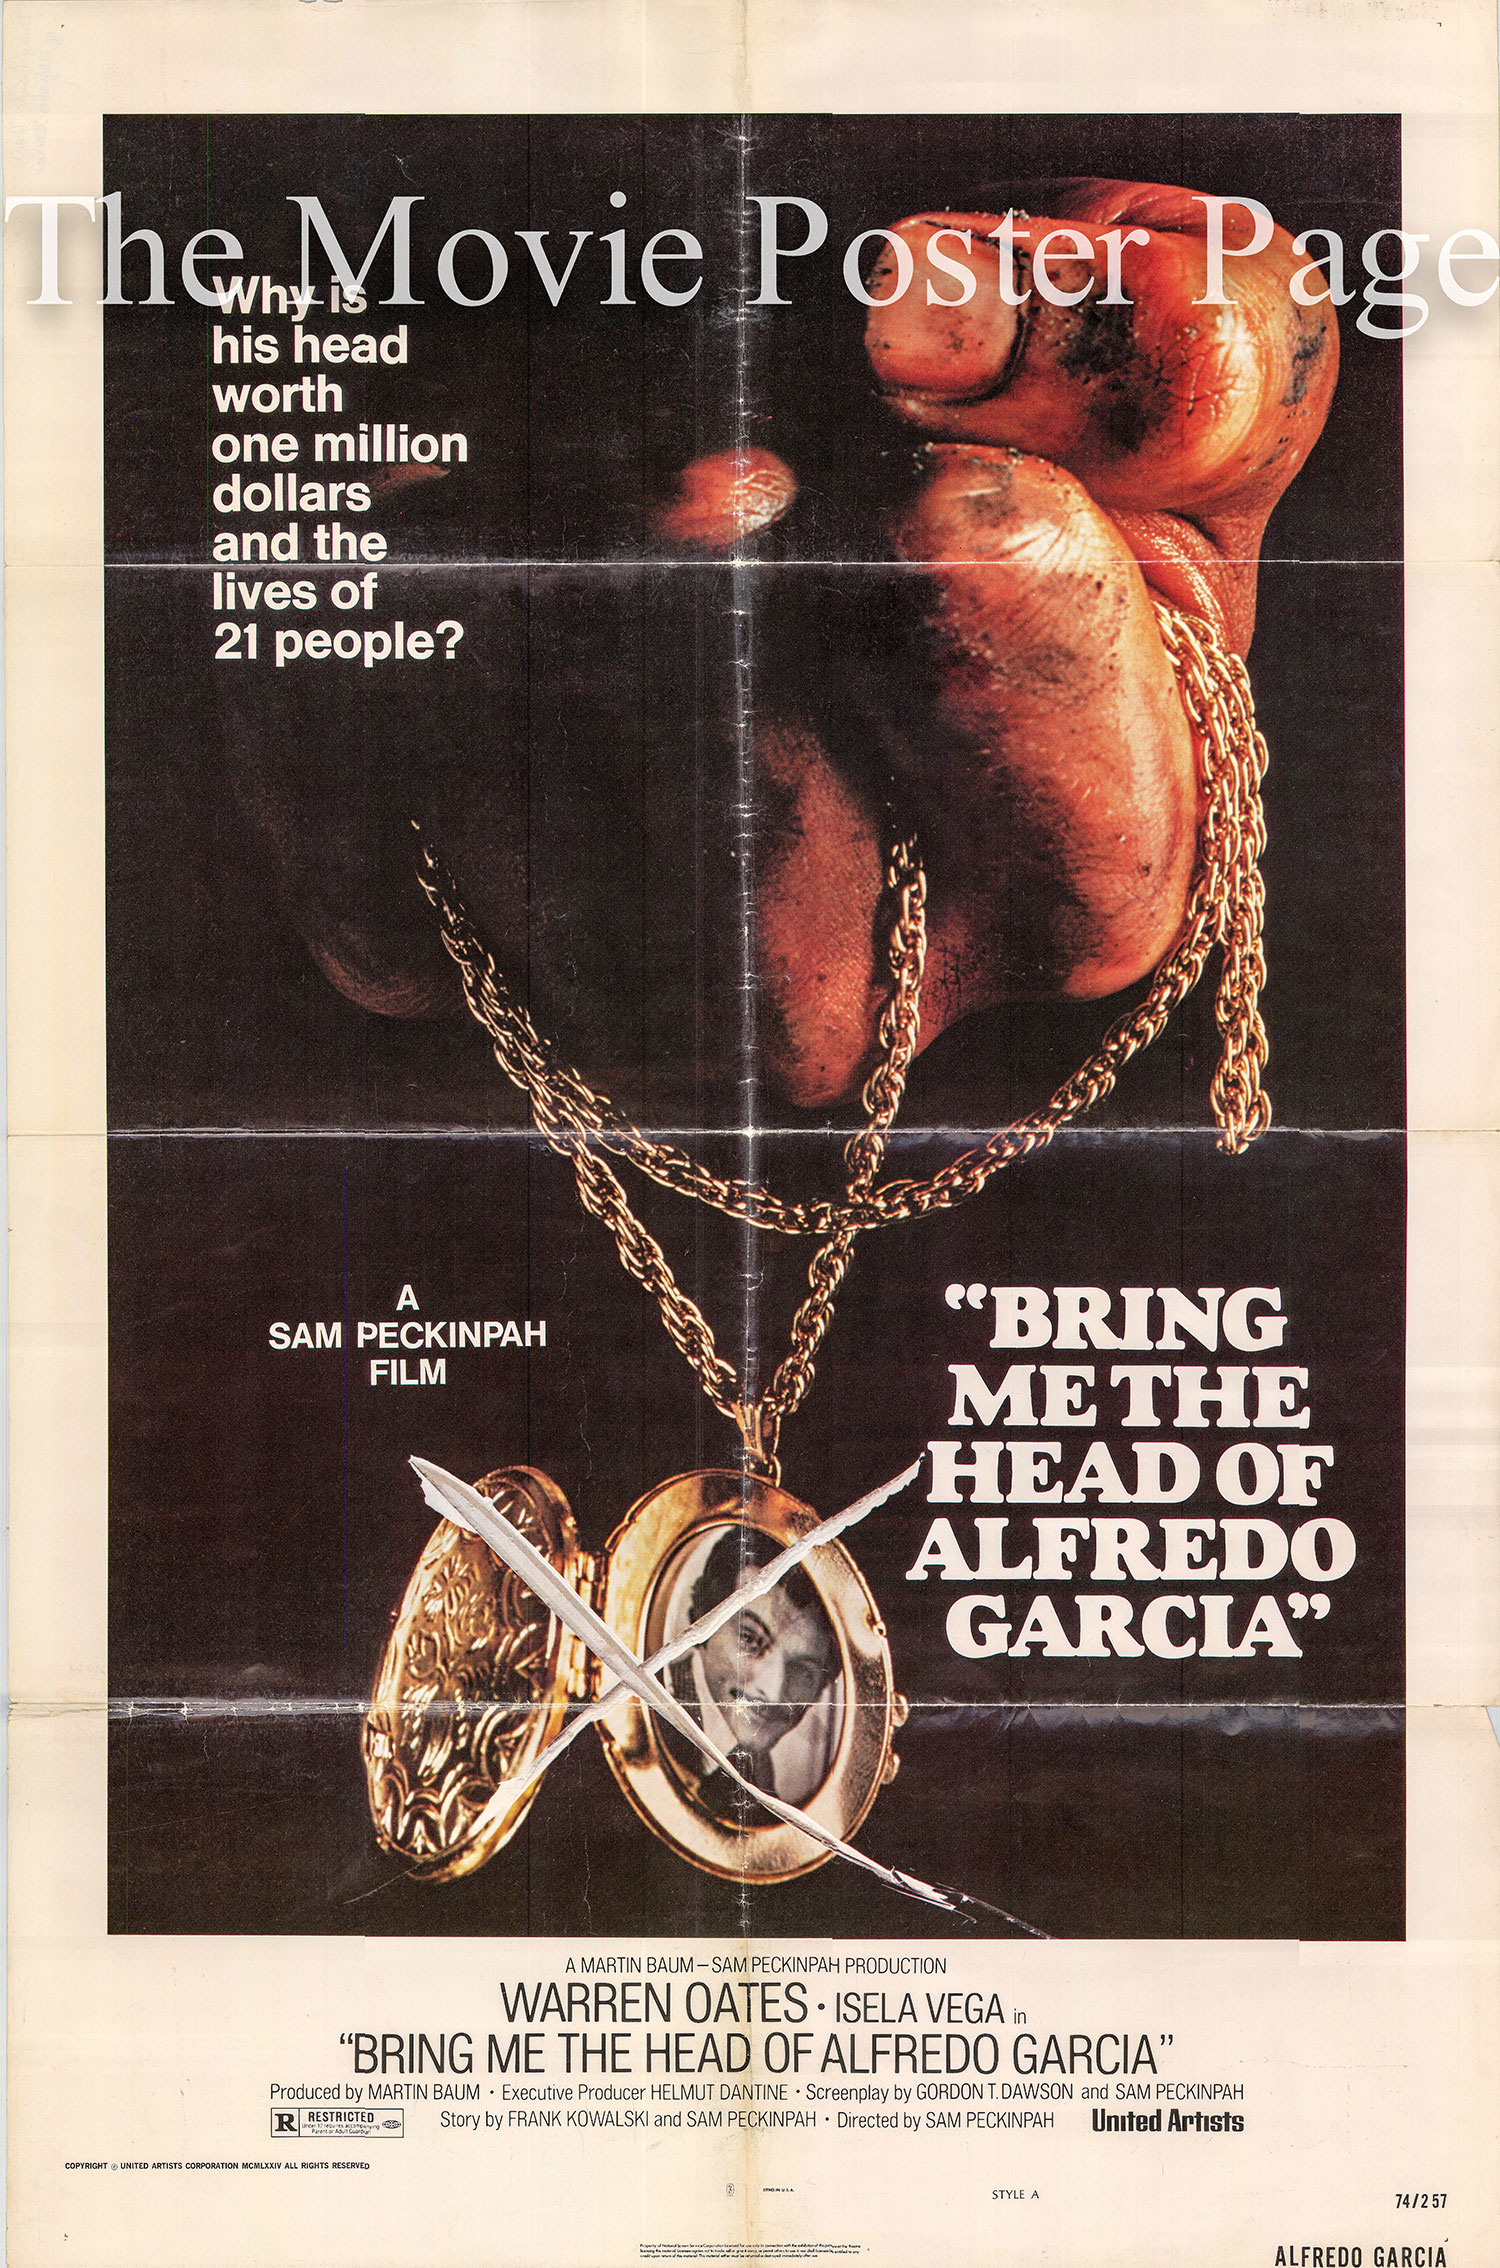 Pictured is a US one-sheet poster for the 1974 Sam Peckinpah film Bring Me the Head of Alfredo Garcia.